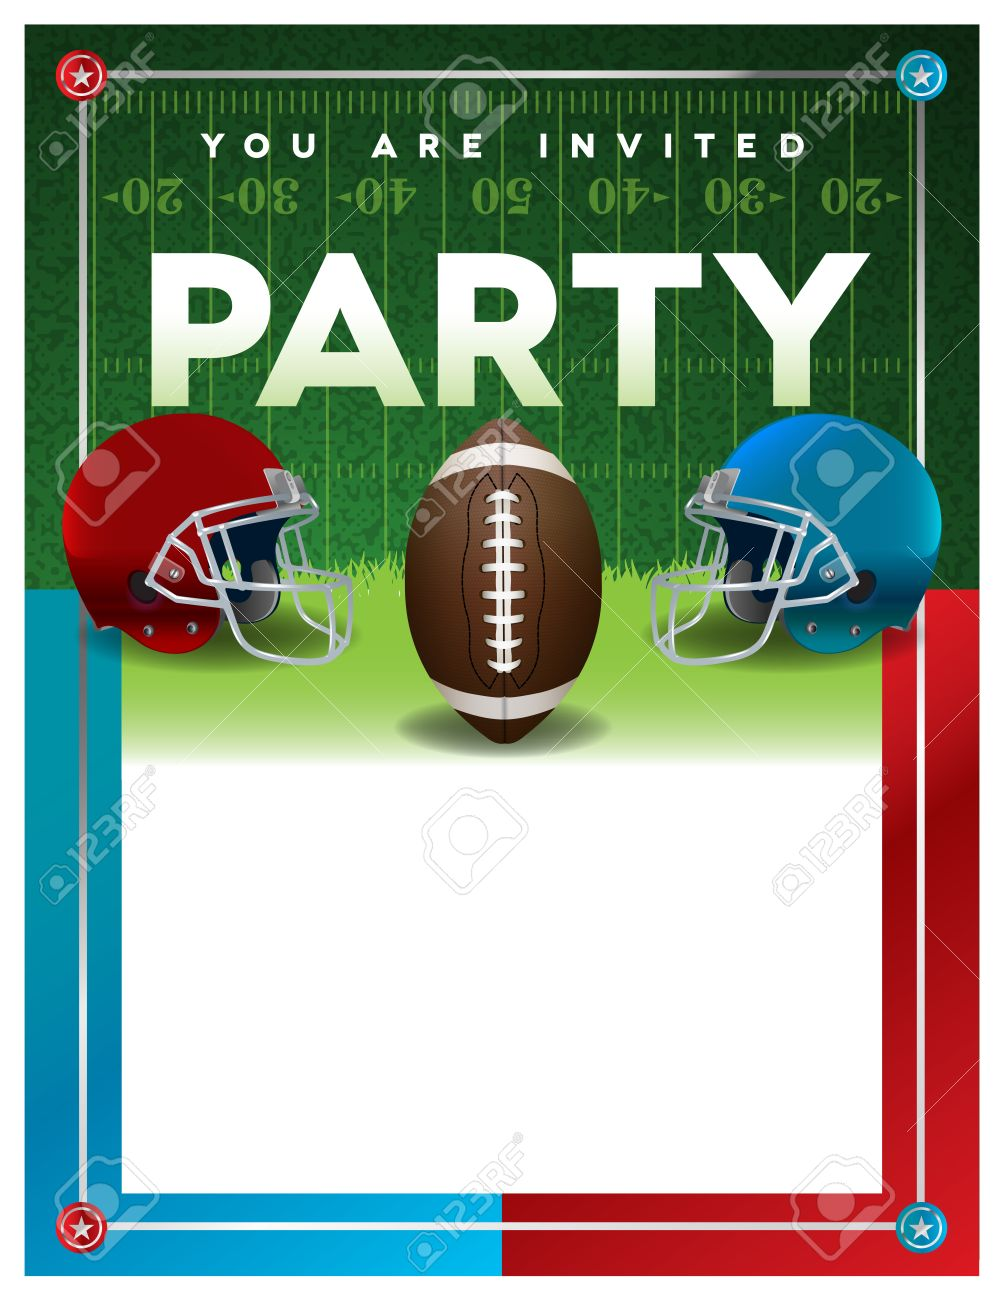 An American Football Party Invitation Flyer Template Design With Room For Copy Vector EPS 10